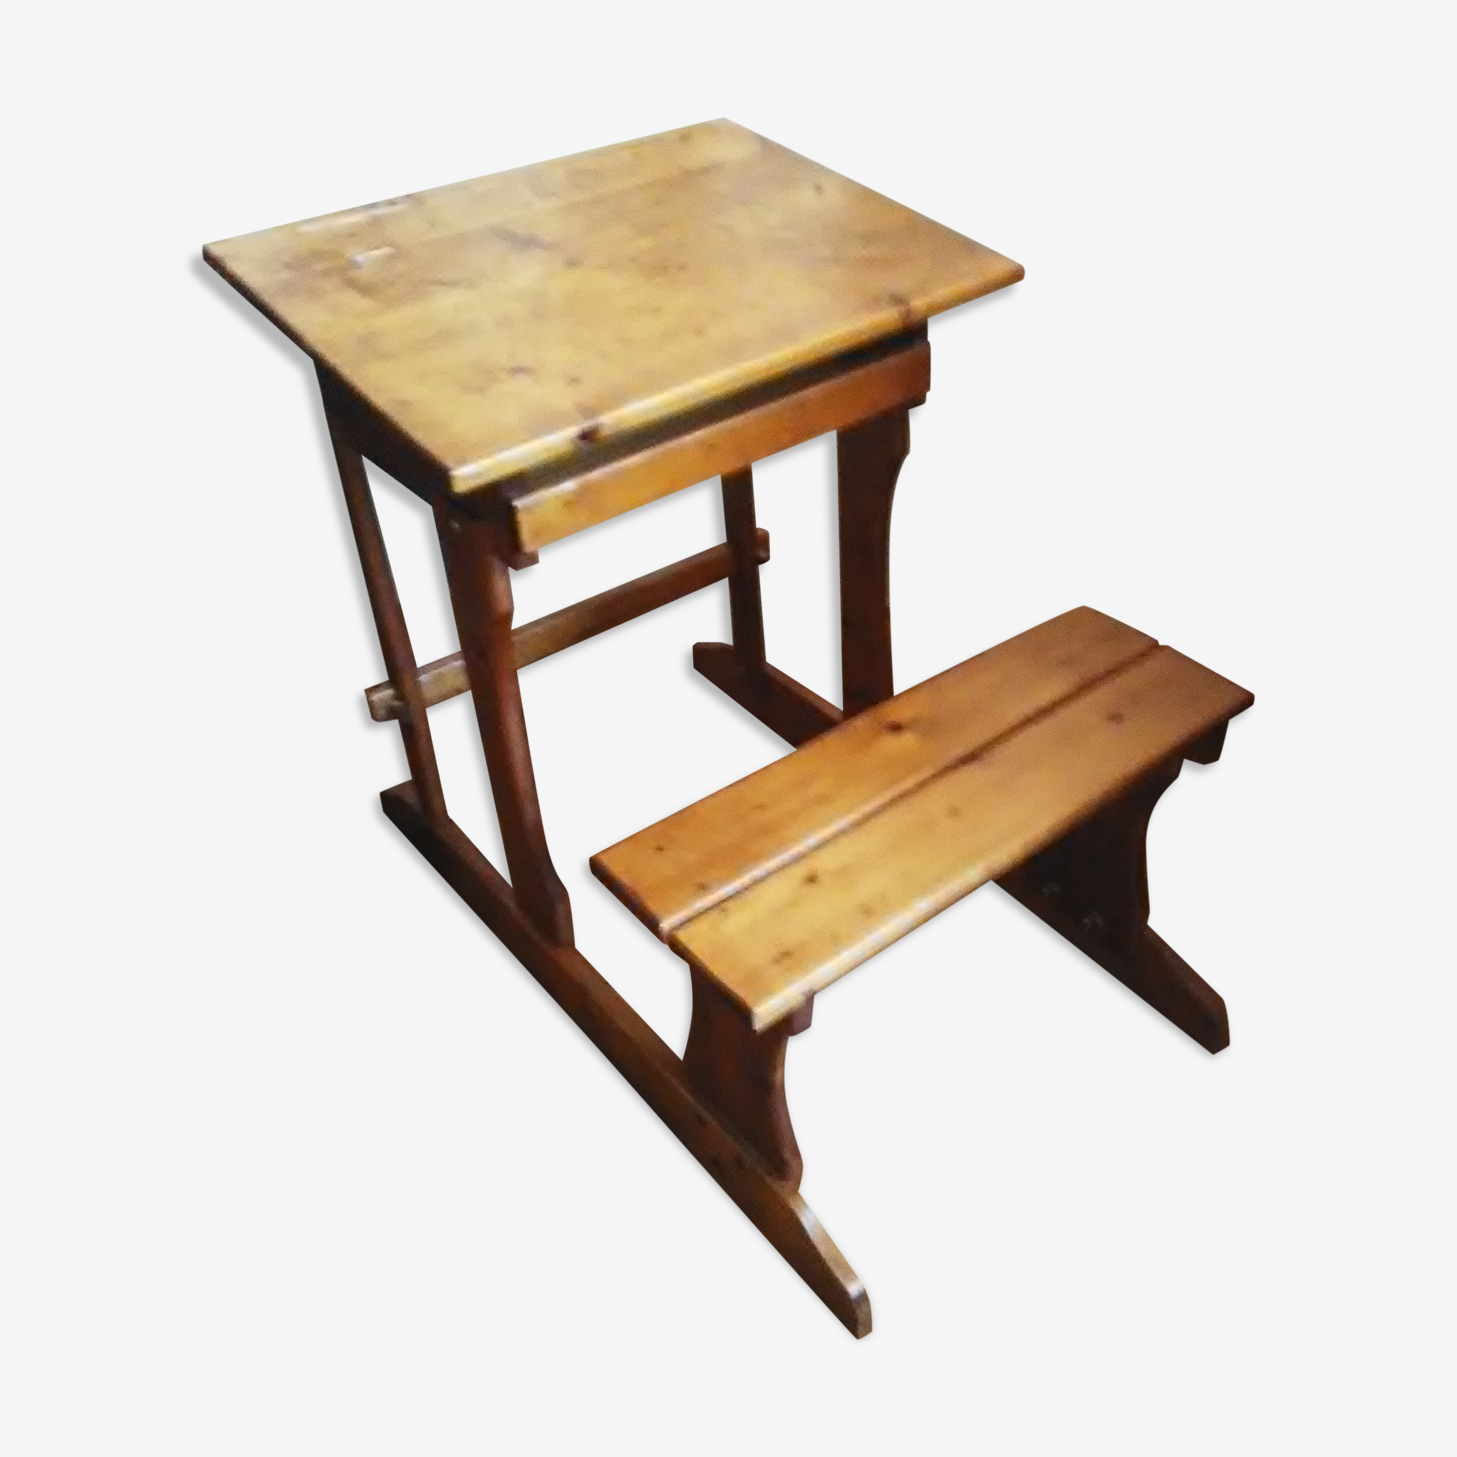 Desk for child